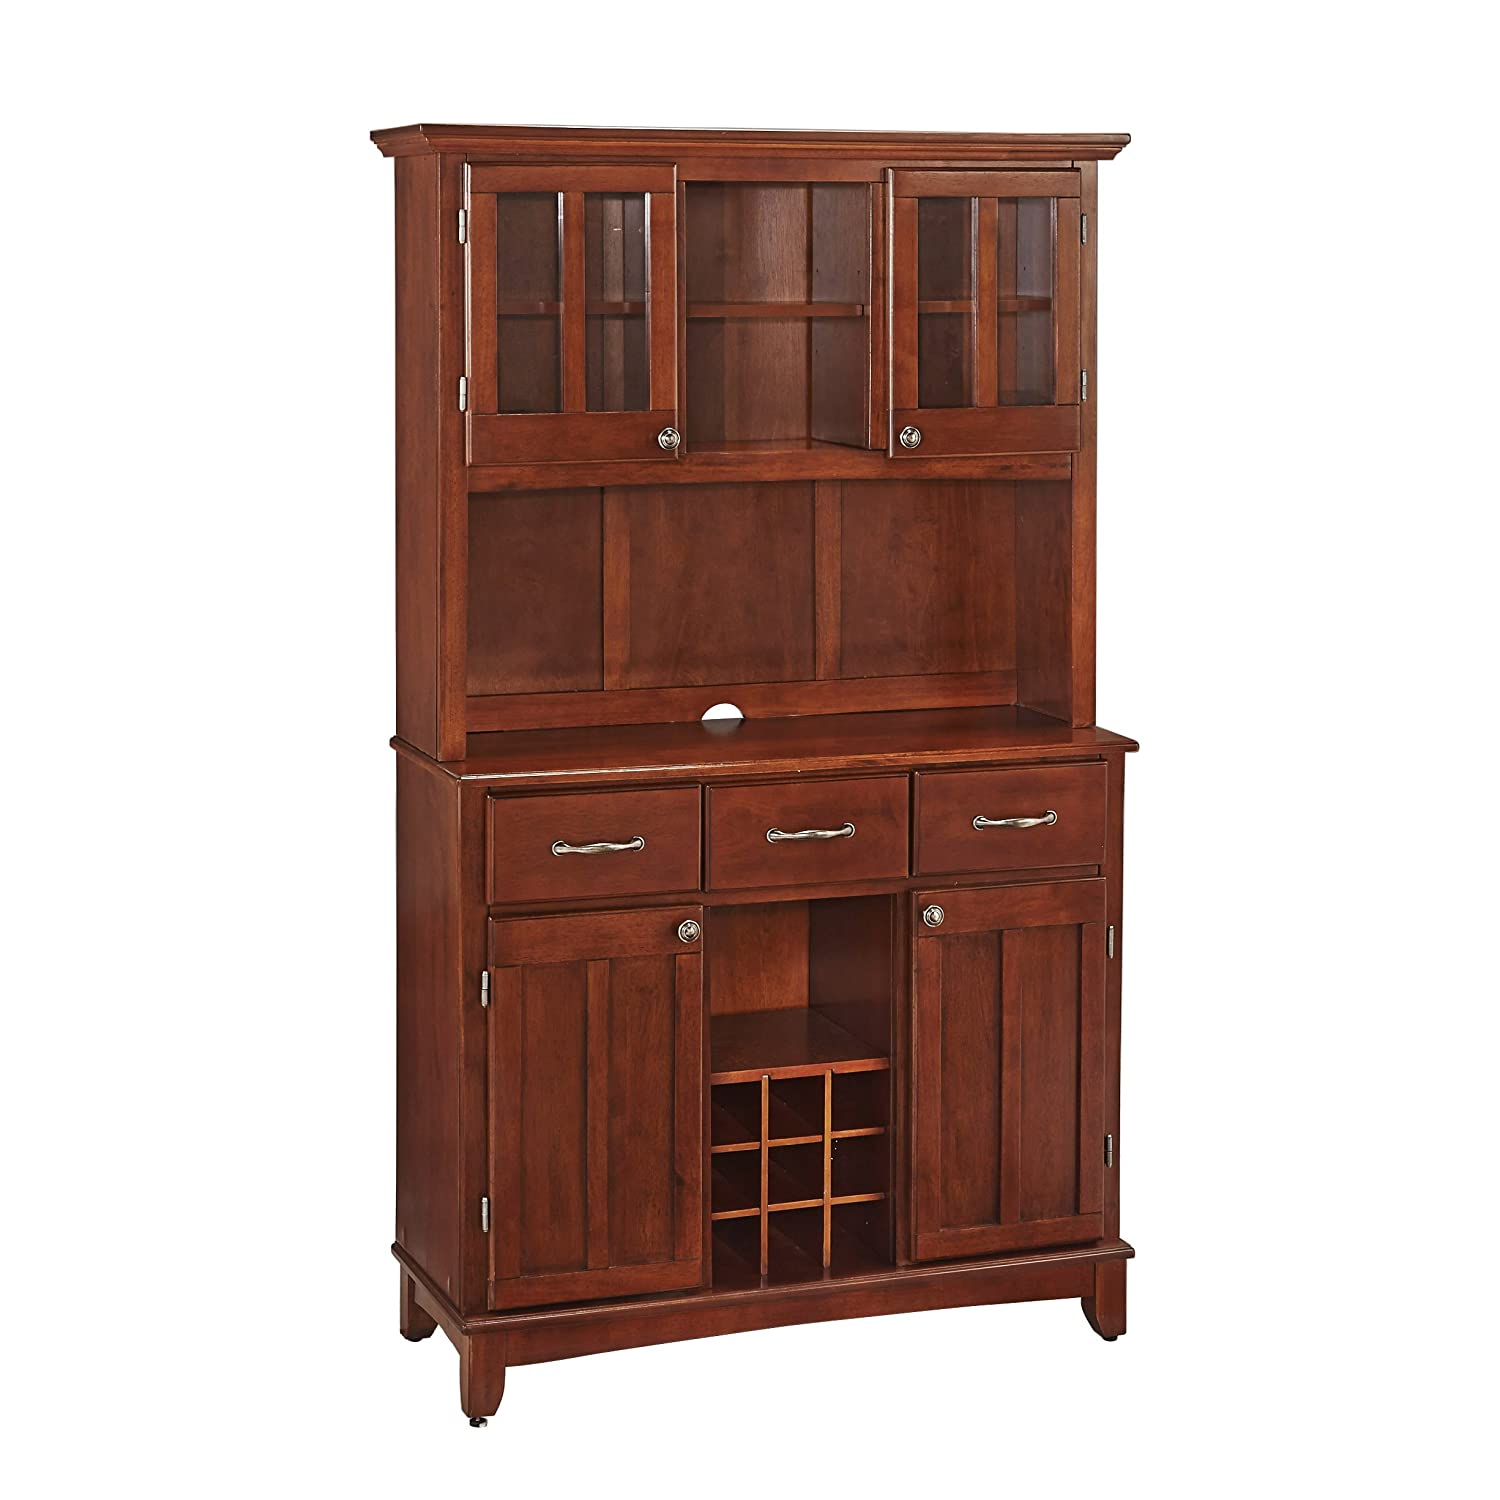 Home Styles Buffet of Buffets Medium Cherry Wood with Hutch, Cherry Finish, 41-3 4-Inch